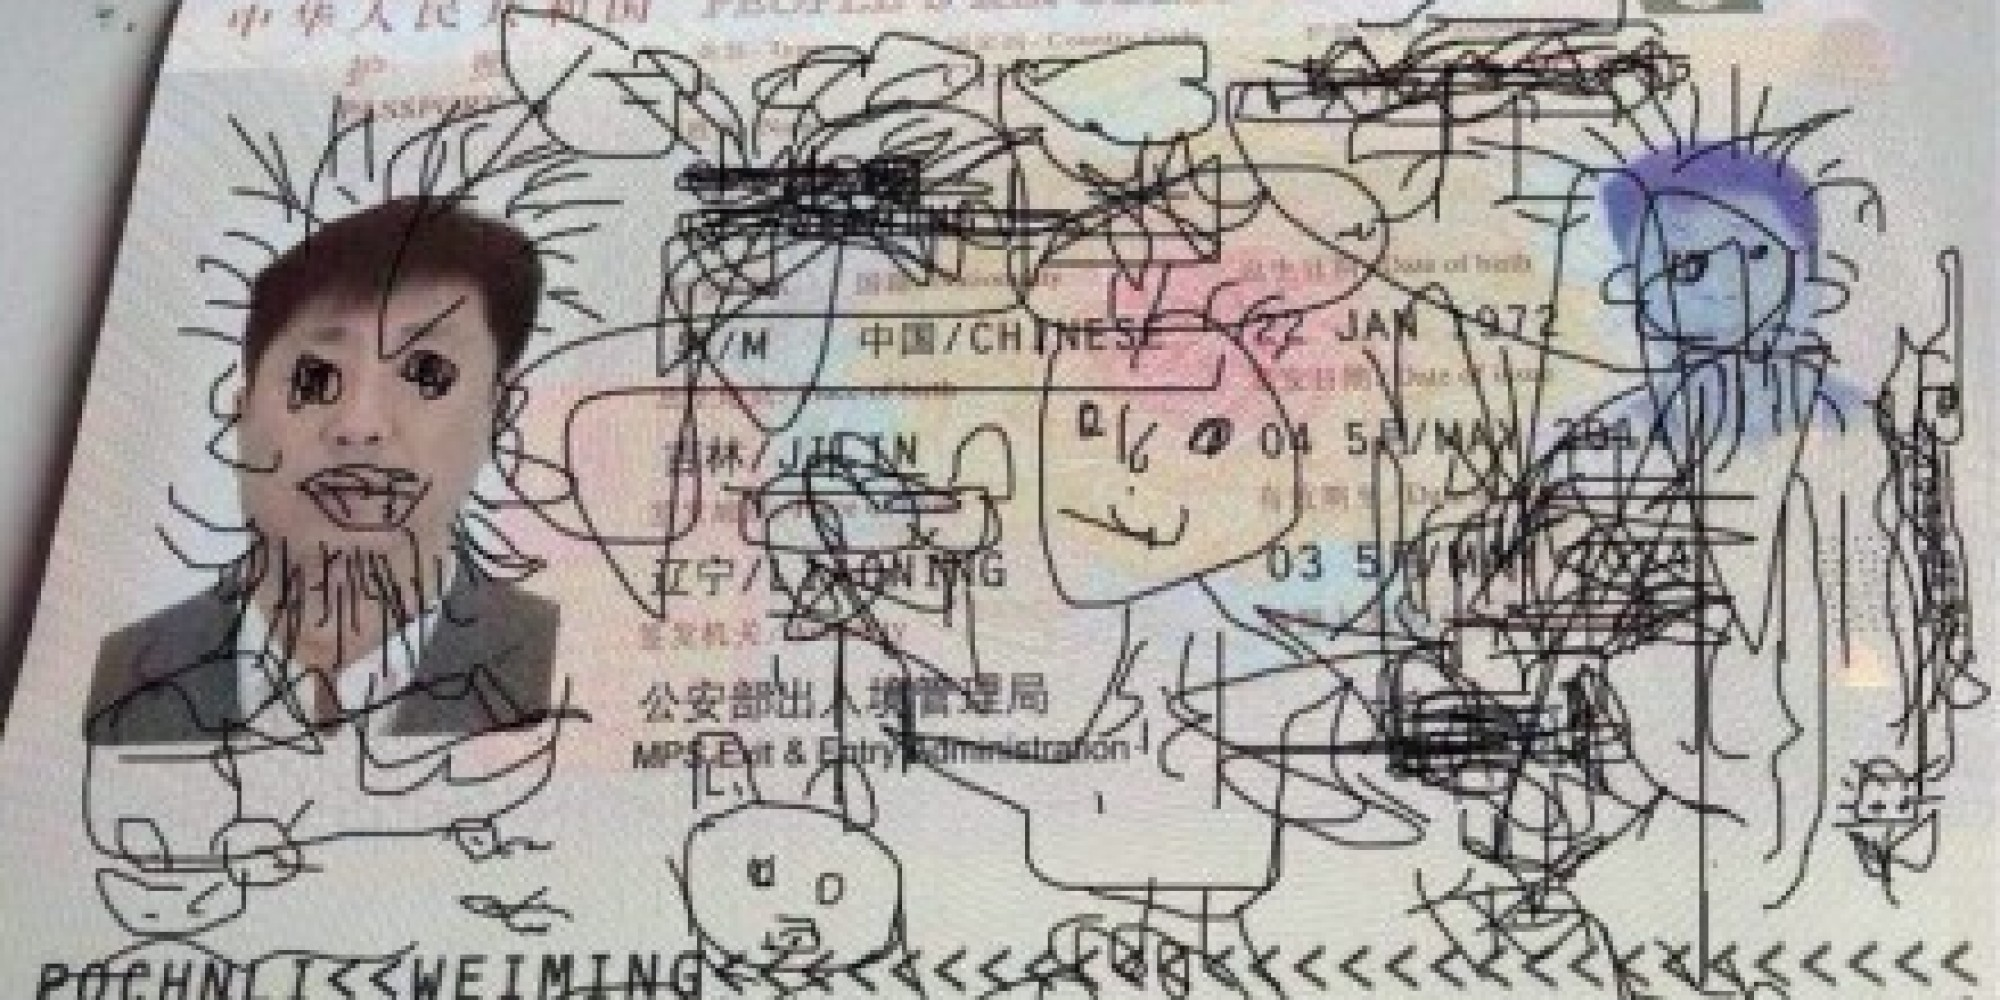 4-Year-Old Doodles In Passport, Gets Dad In Seriously Hot ...